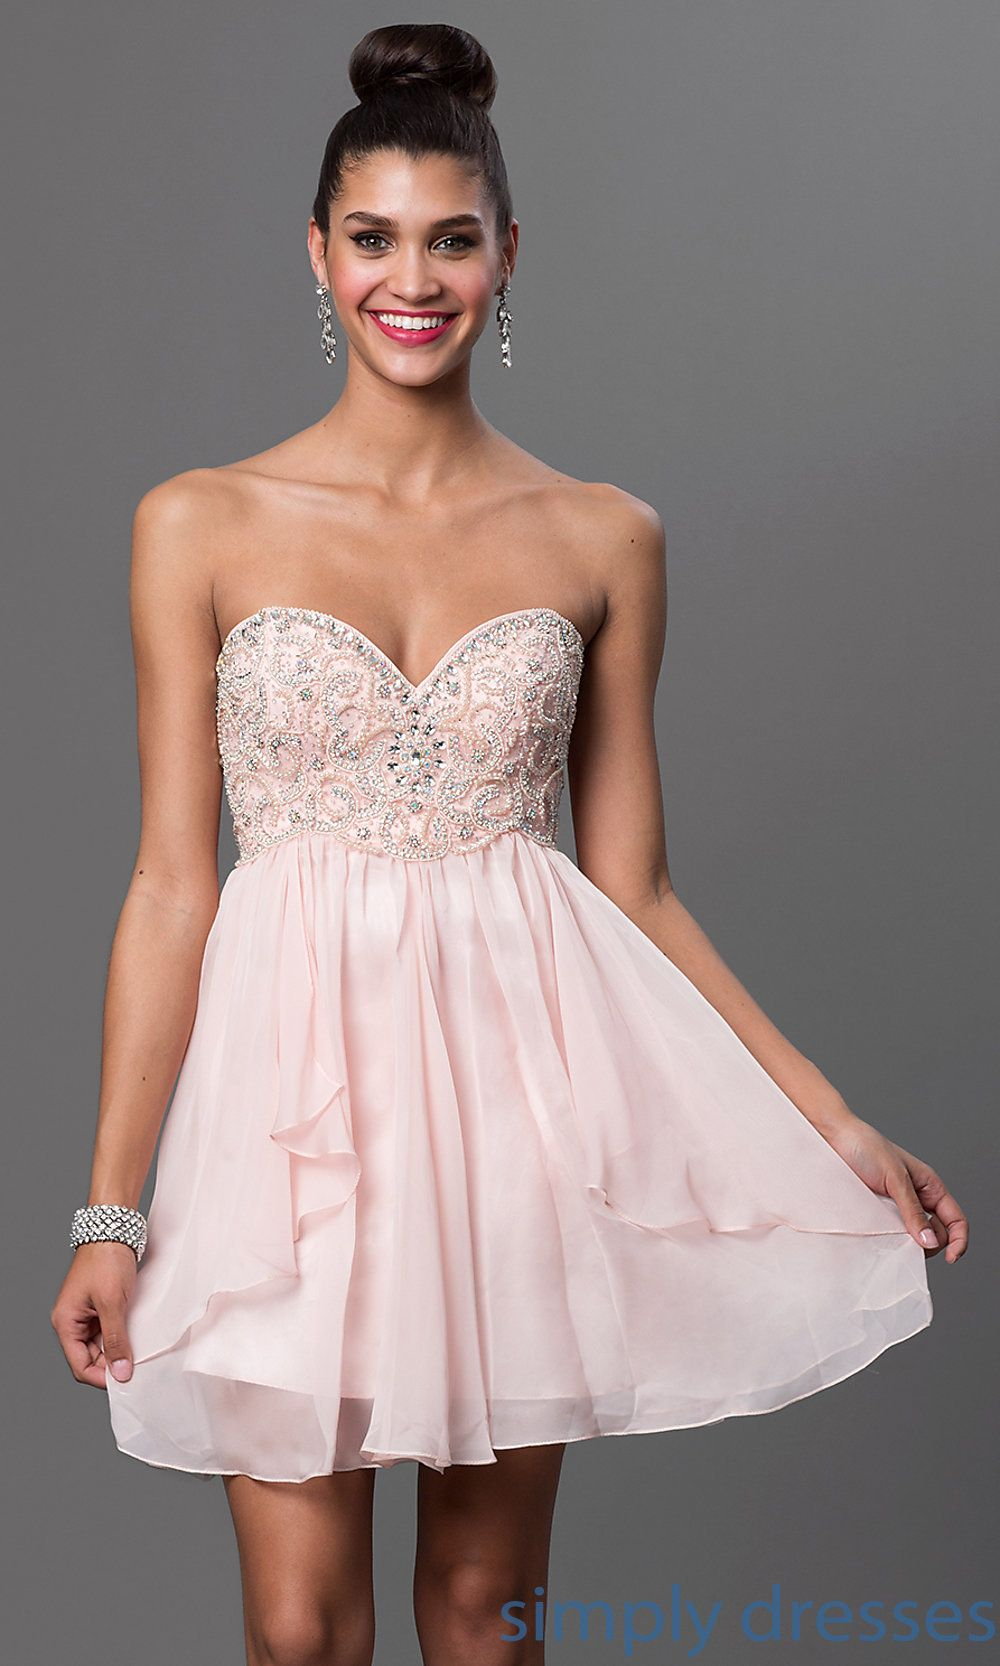 Strapless Party Dress Babydoll Short Prom Dress Simply Dresses Strapless Party Dress Dresses Evening Dresses For Weddings [ 1666 x 1000 Pixel ]